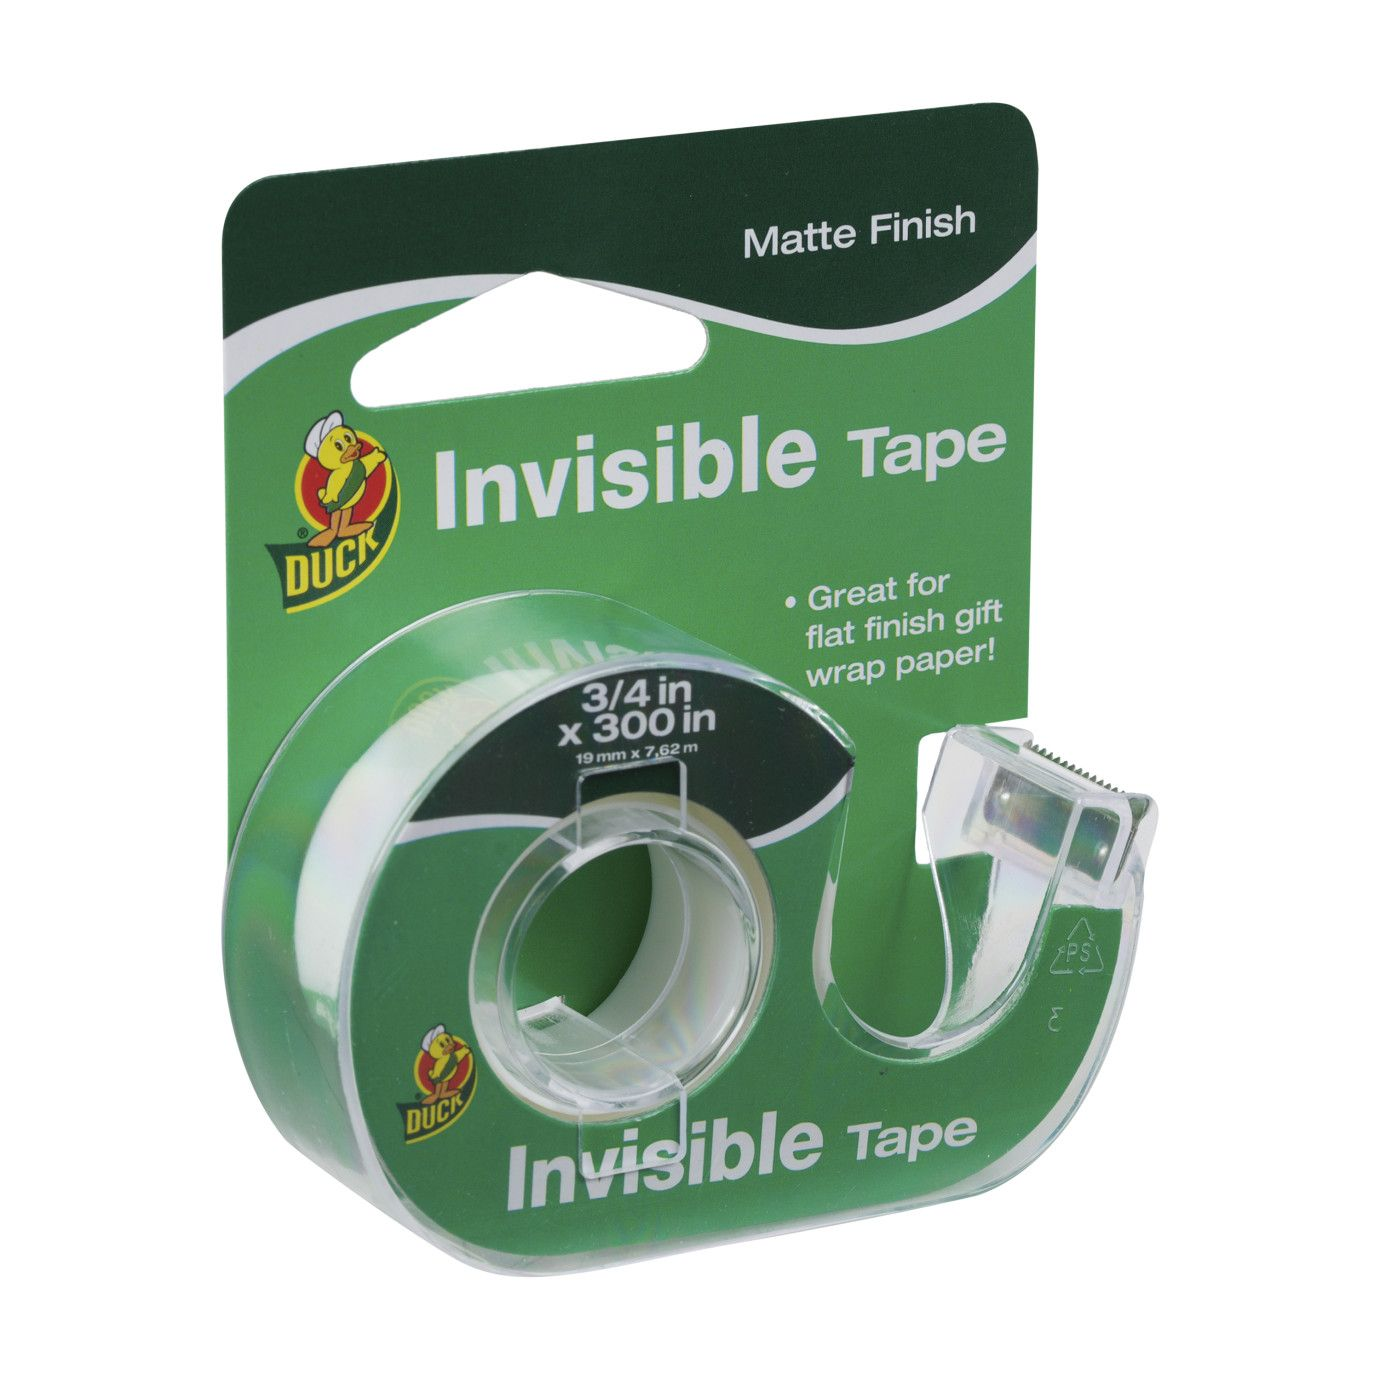 Matte Finish Invisible Tape Duck Brand Http Duckbrand Com